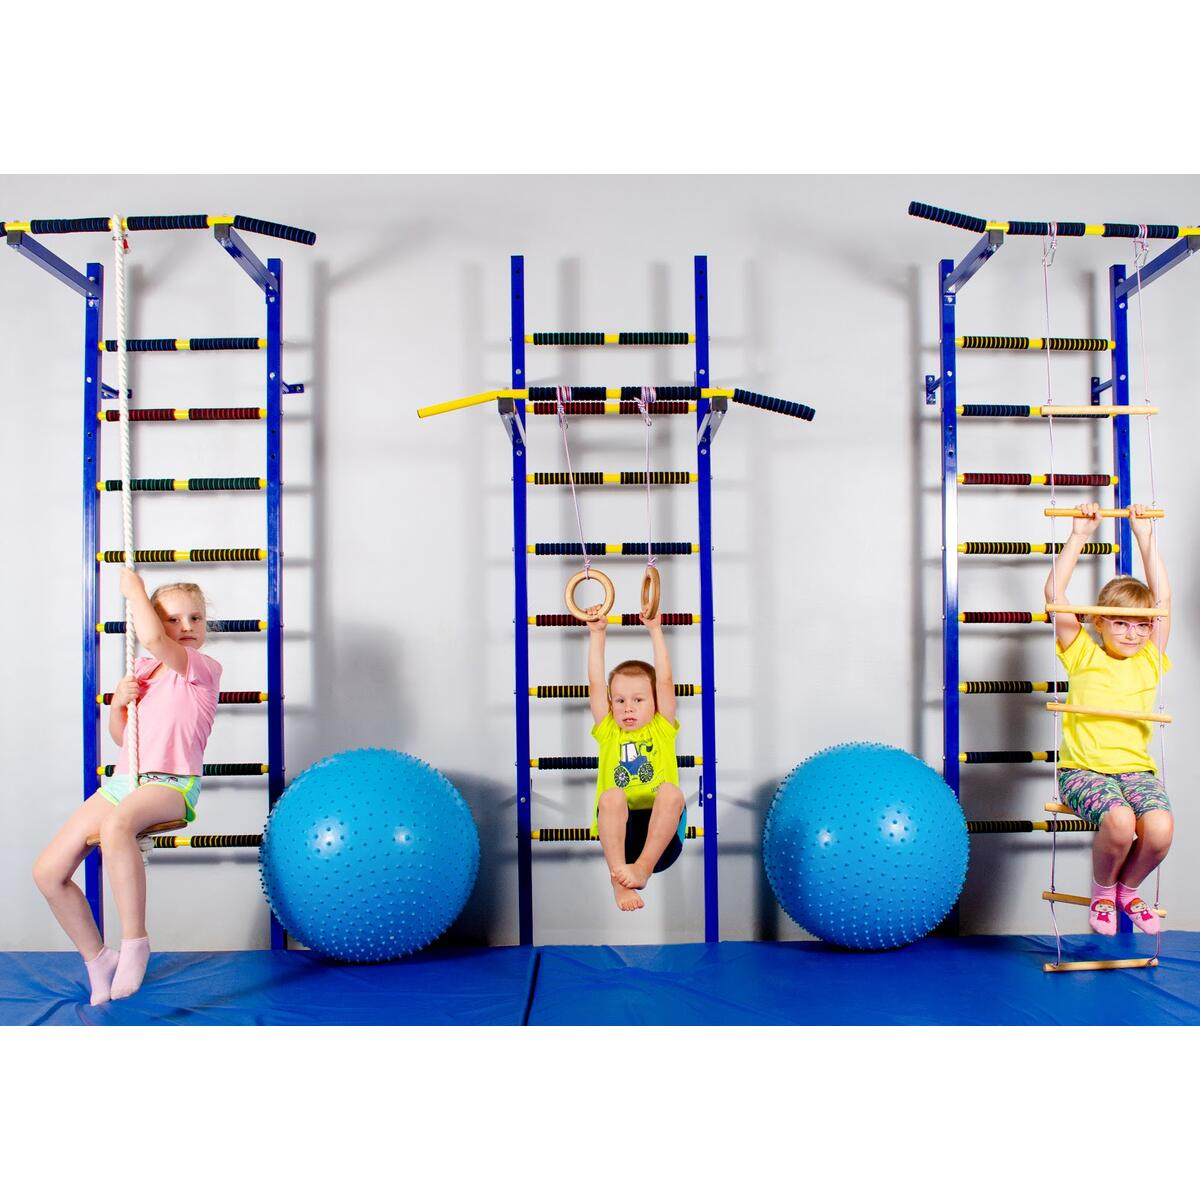 Kids GYM play set include swing, climbing ladder and gymnastics rings